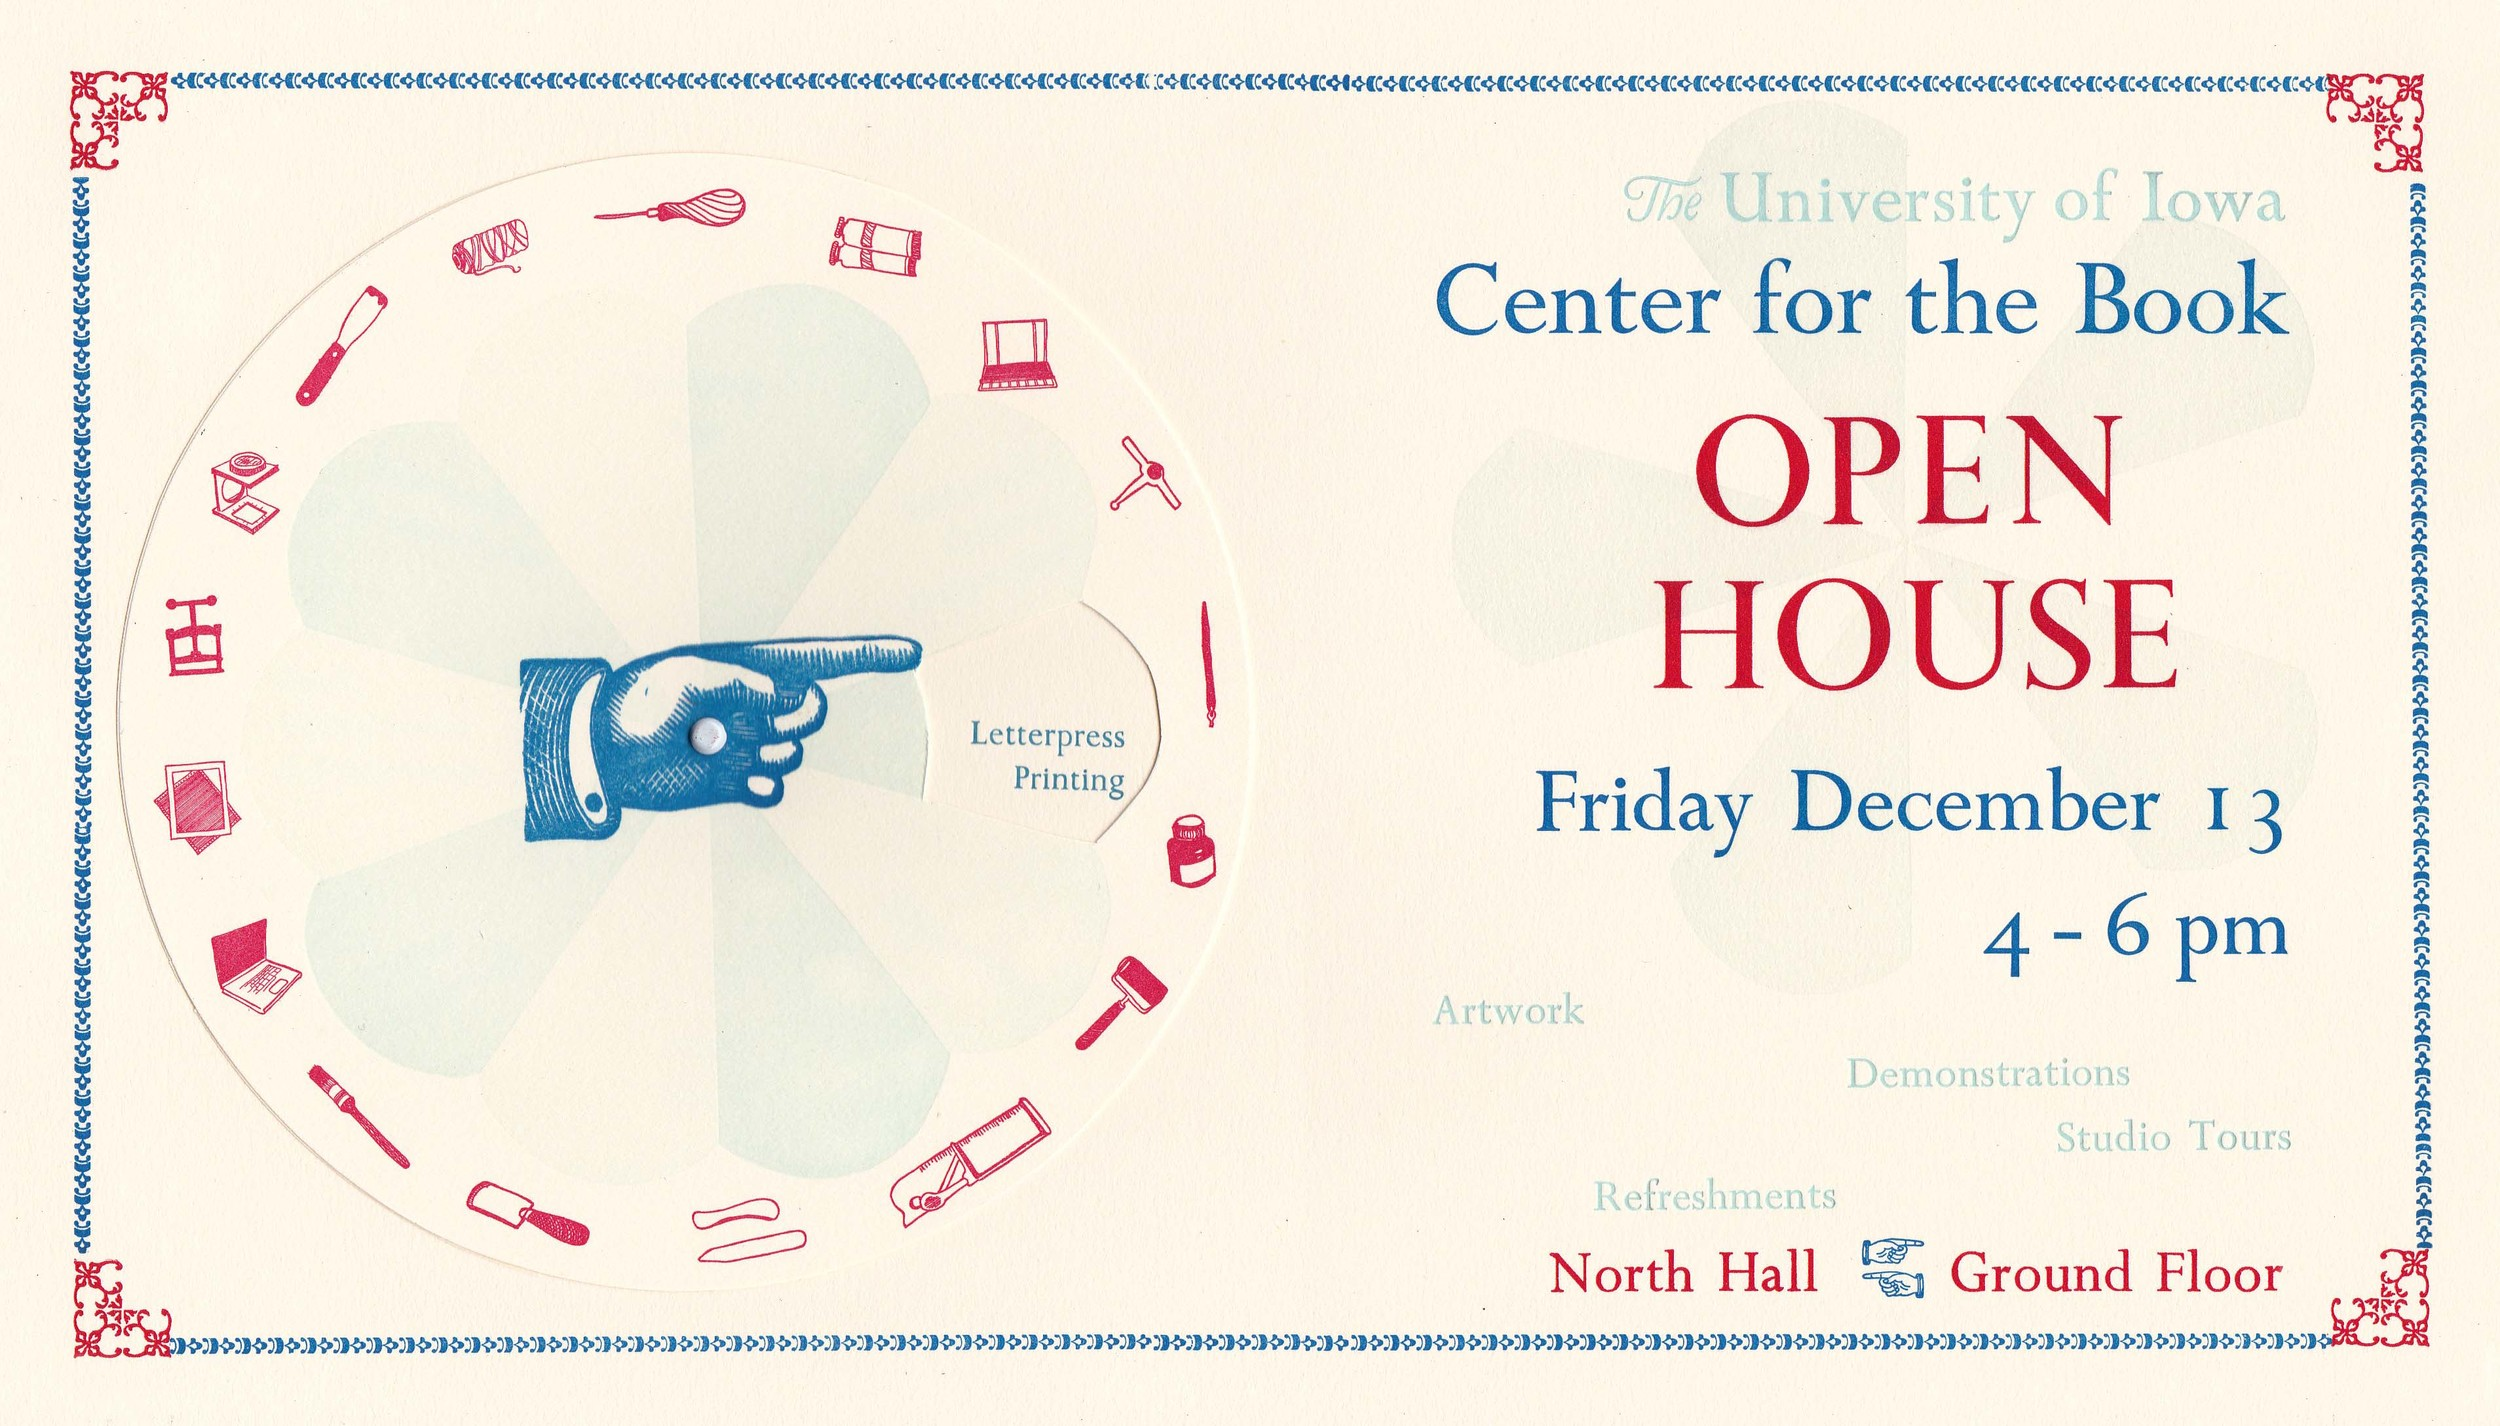 UICB Open House Poster